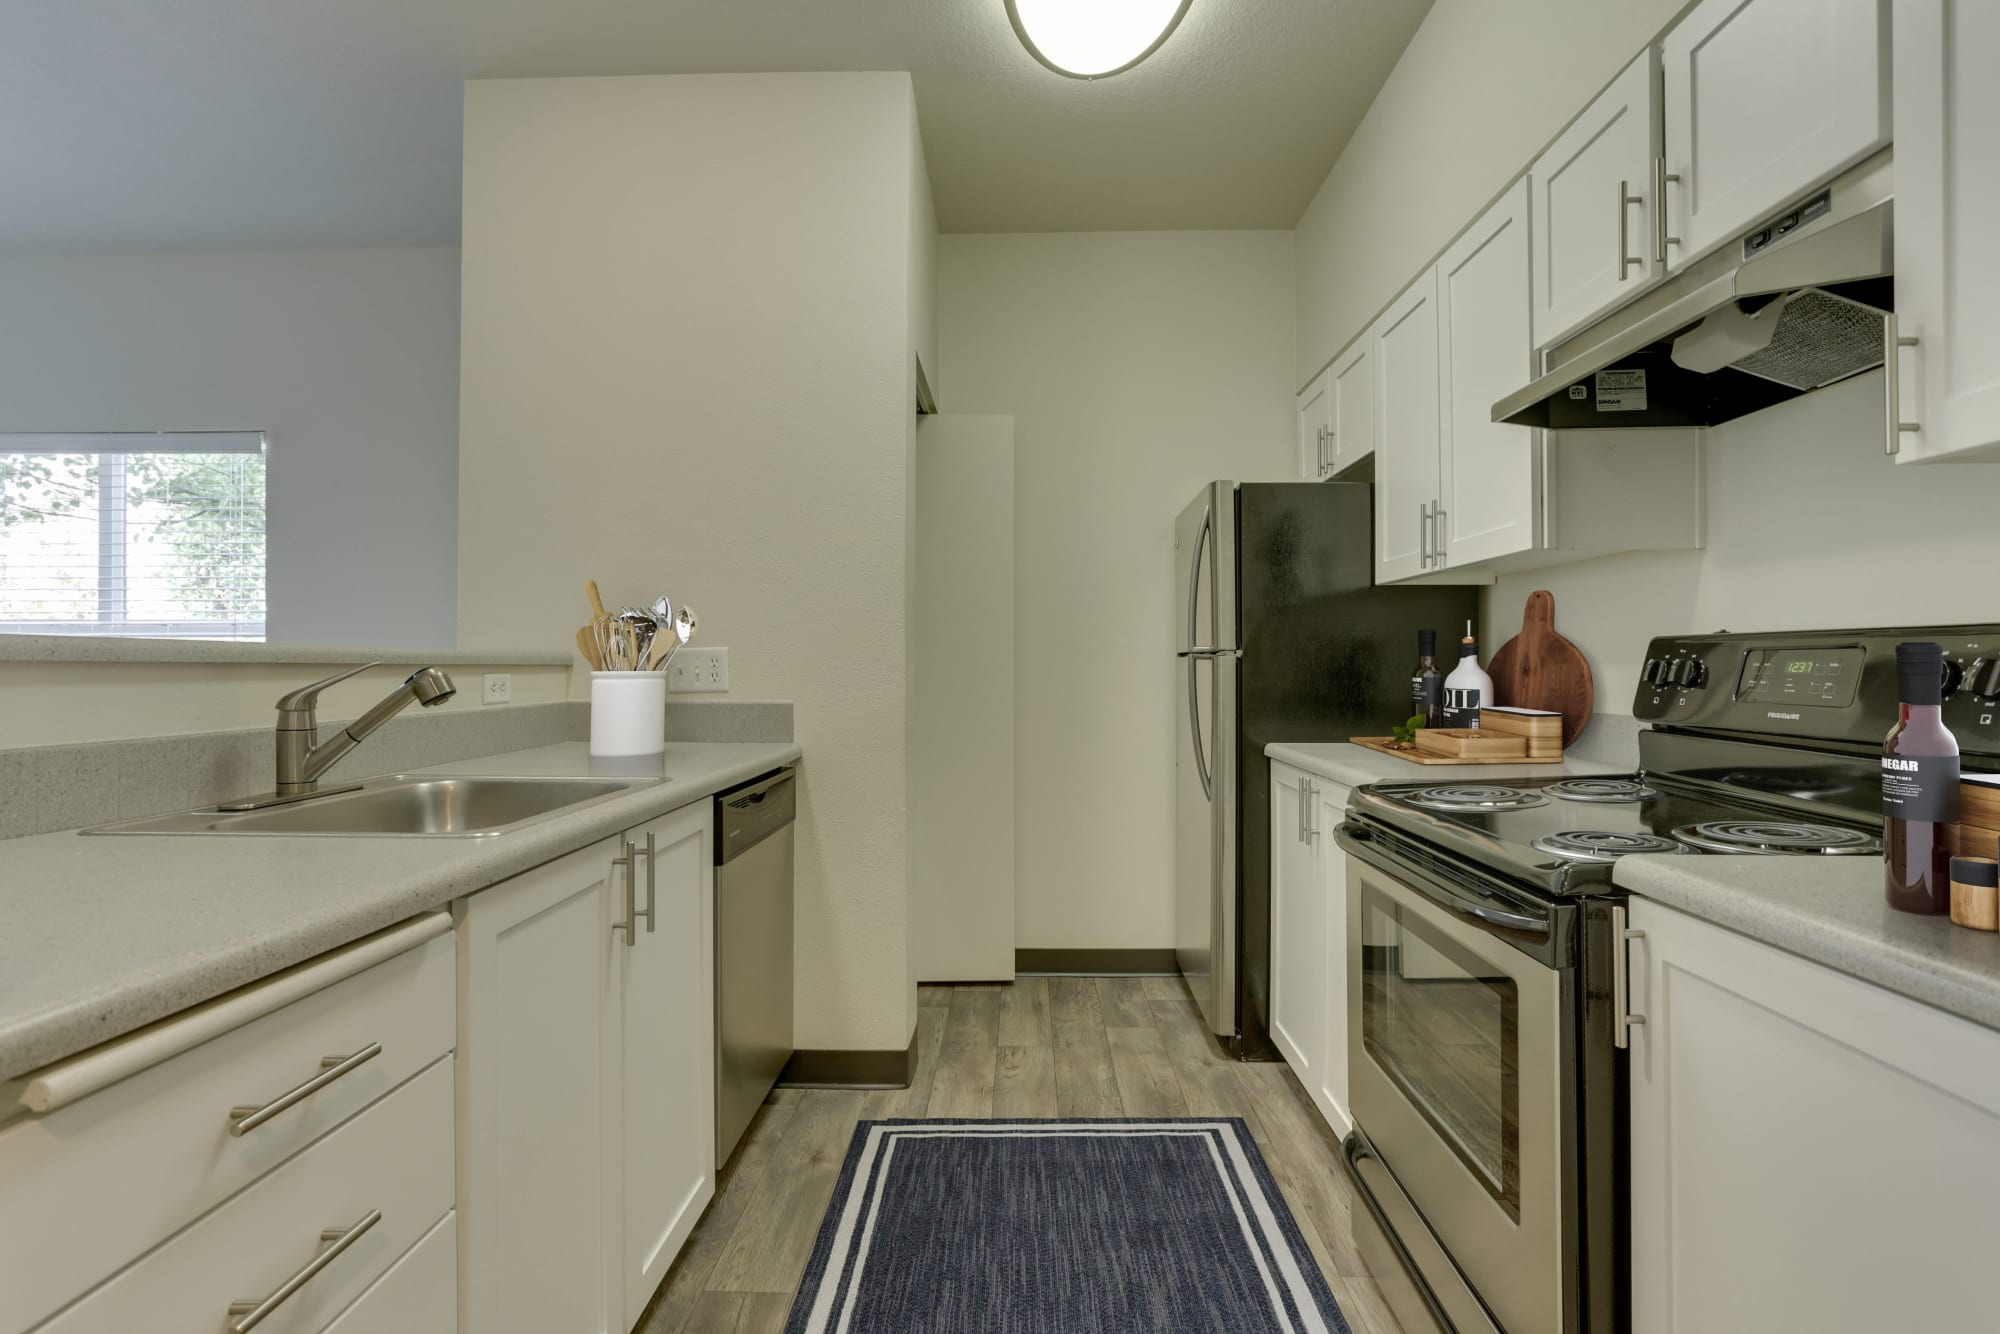 Newly renovated kitchen with white cabinets and stainless steel appliances at The Landings at Morrison Apartments in Gresham, Oregon